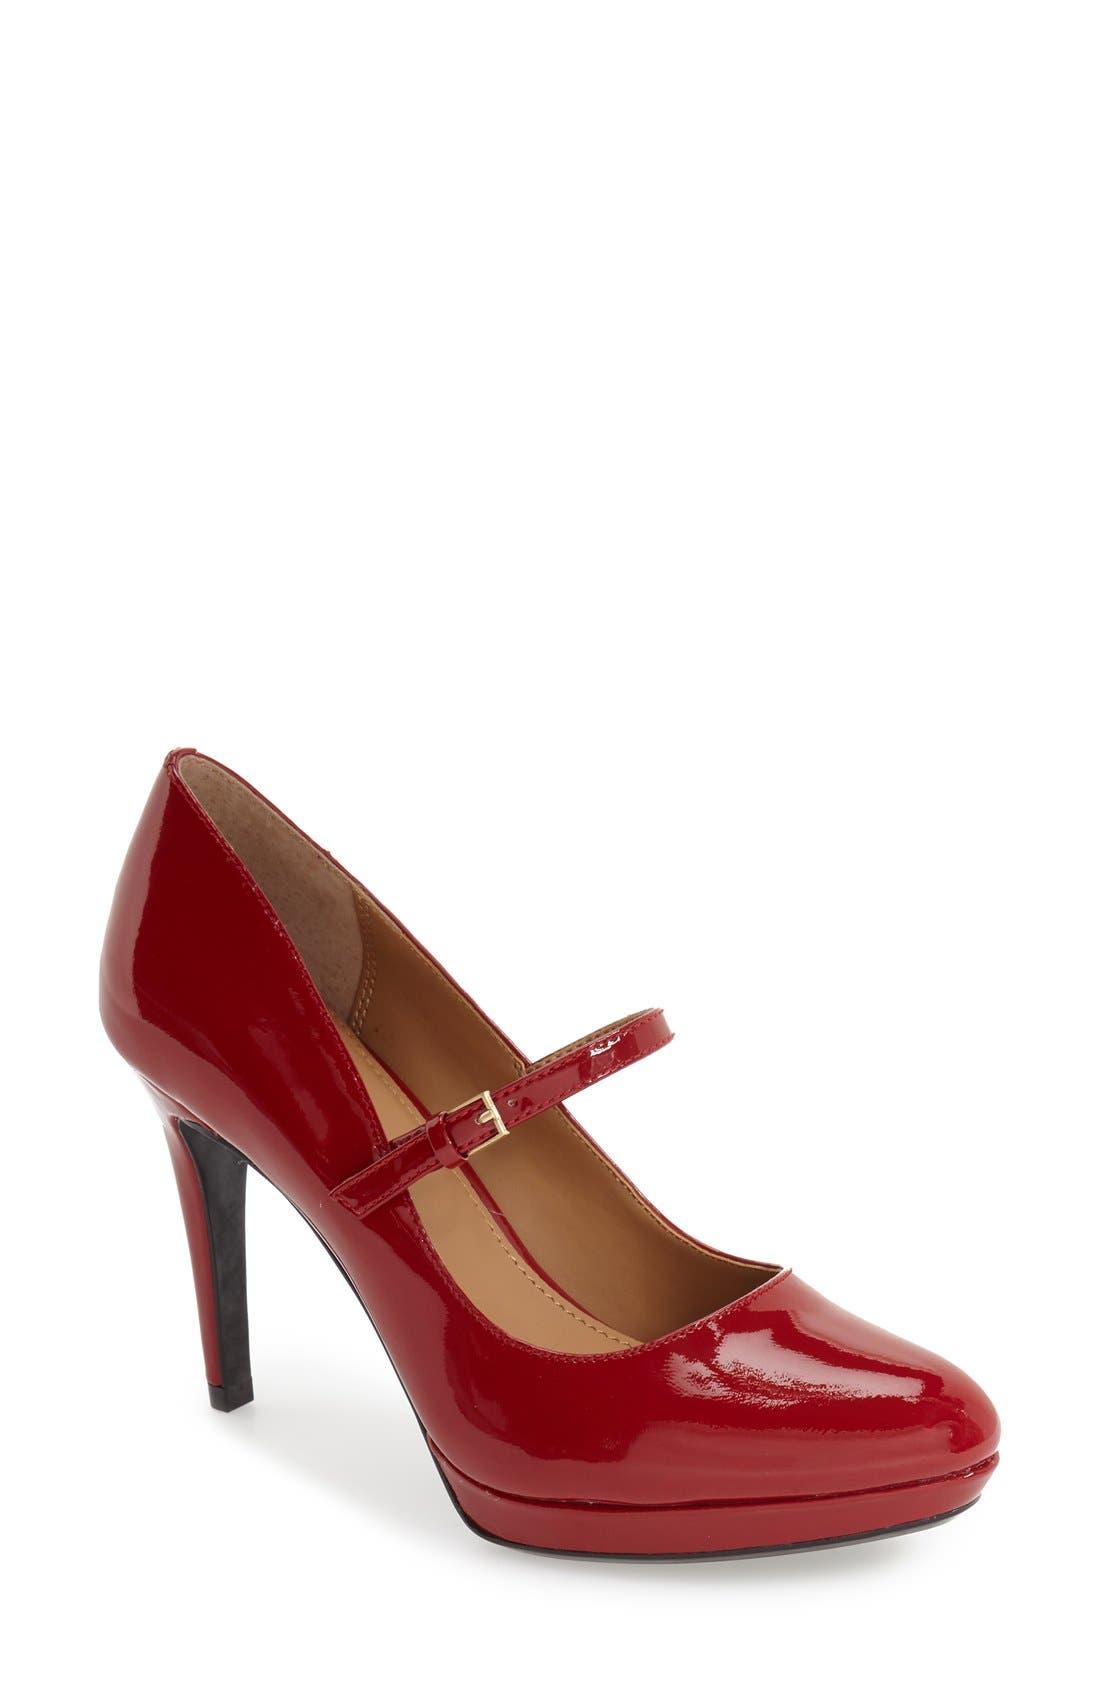 Alternate Image 1 Selected - Calvin Klein 'Paislie' Mary Jane Pump (Women)